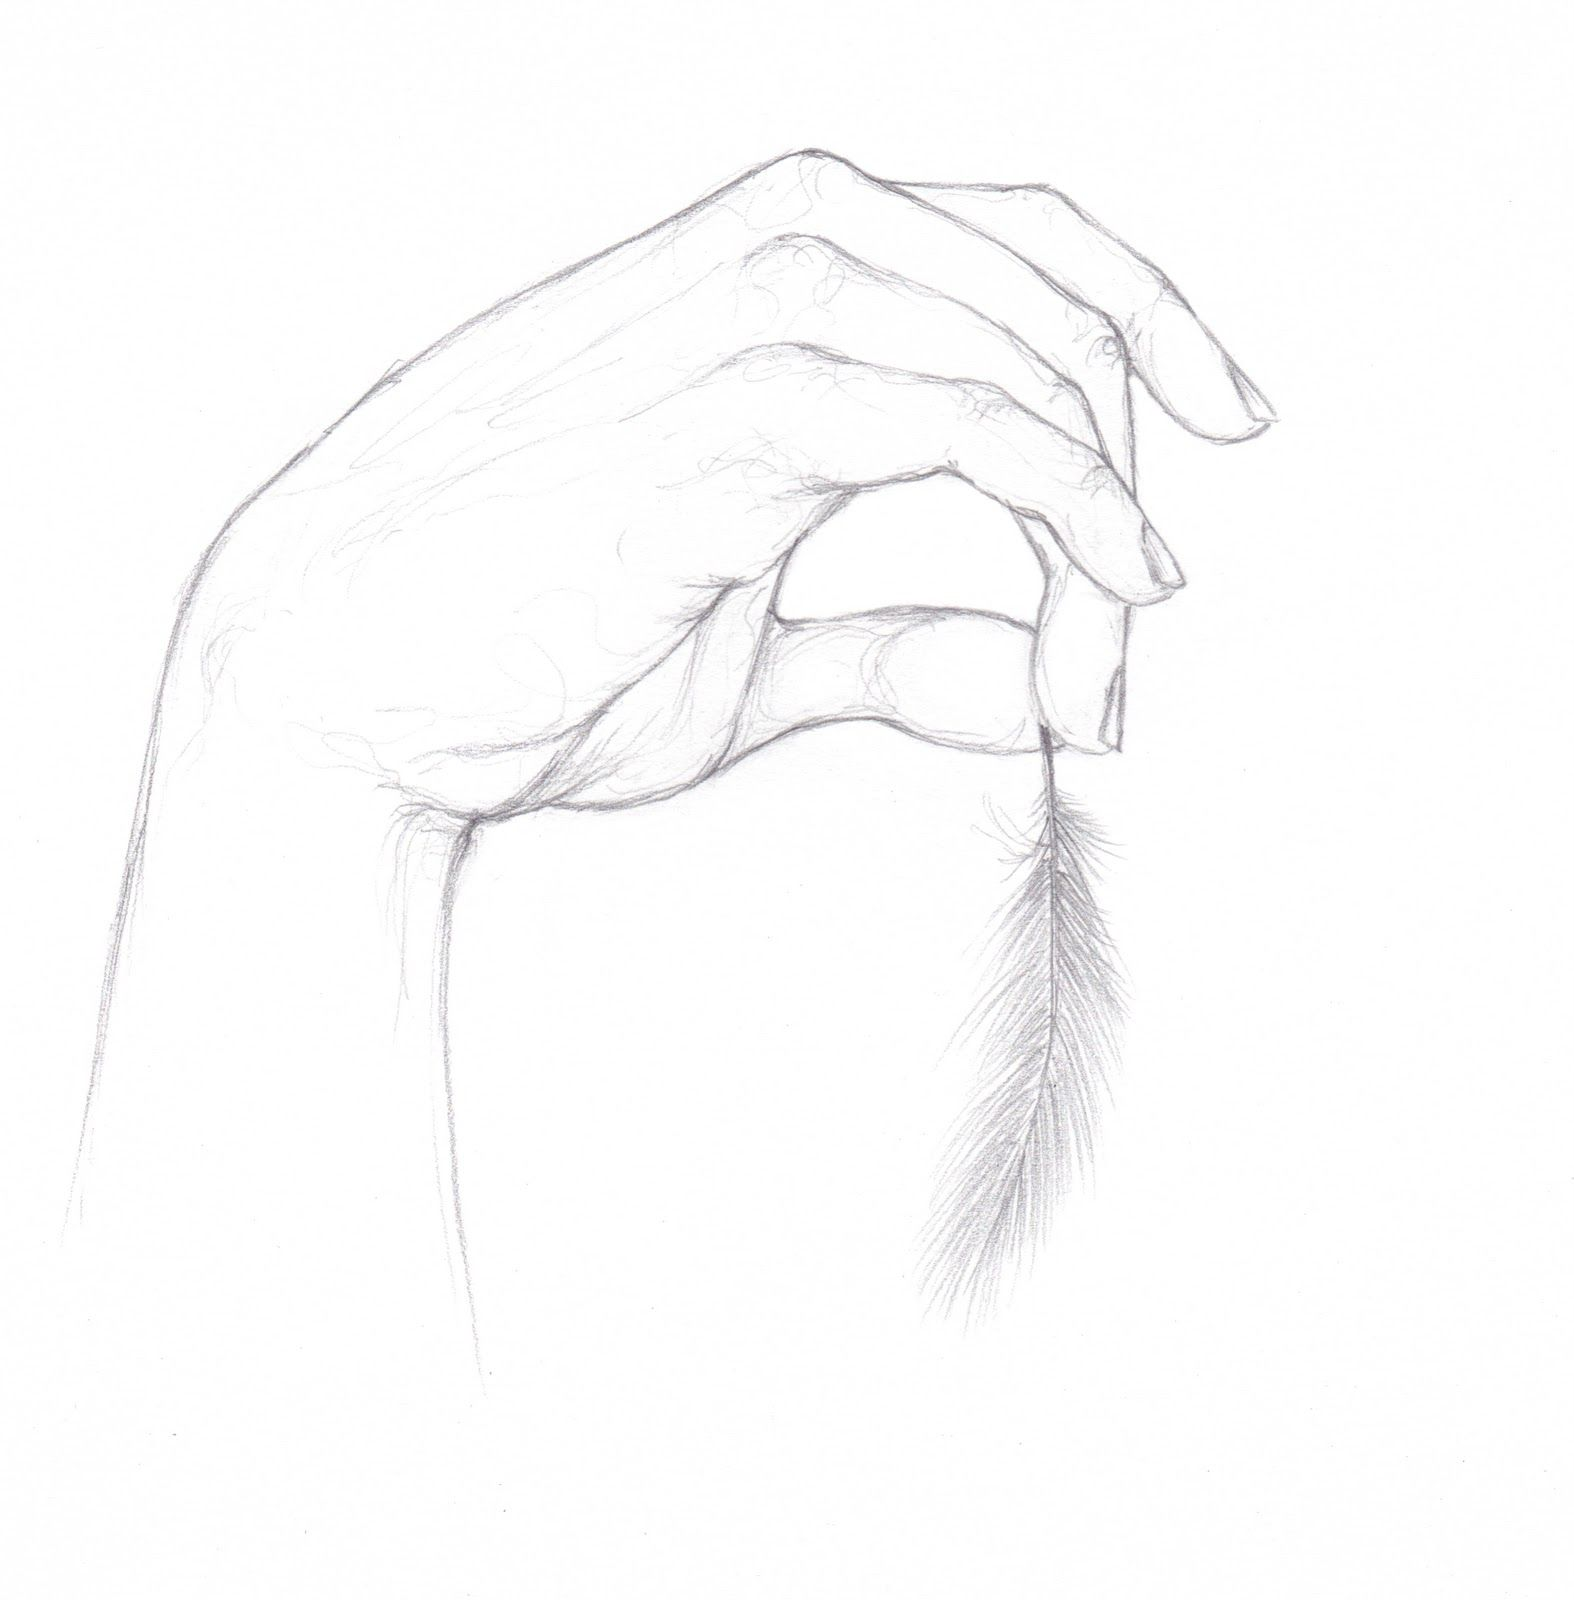 Simple hand drawings in pencil easy pencil x pencil drawings of people pencil drawings of hands 531 x